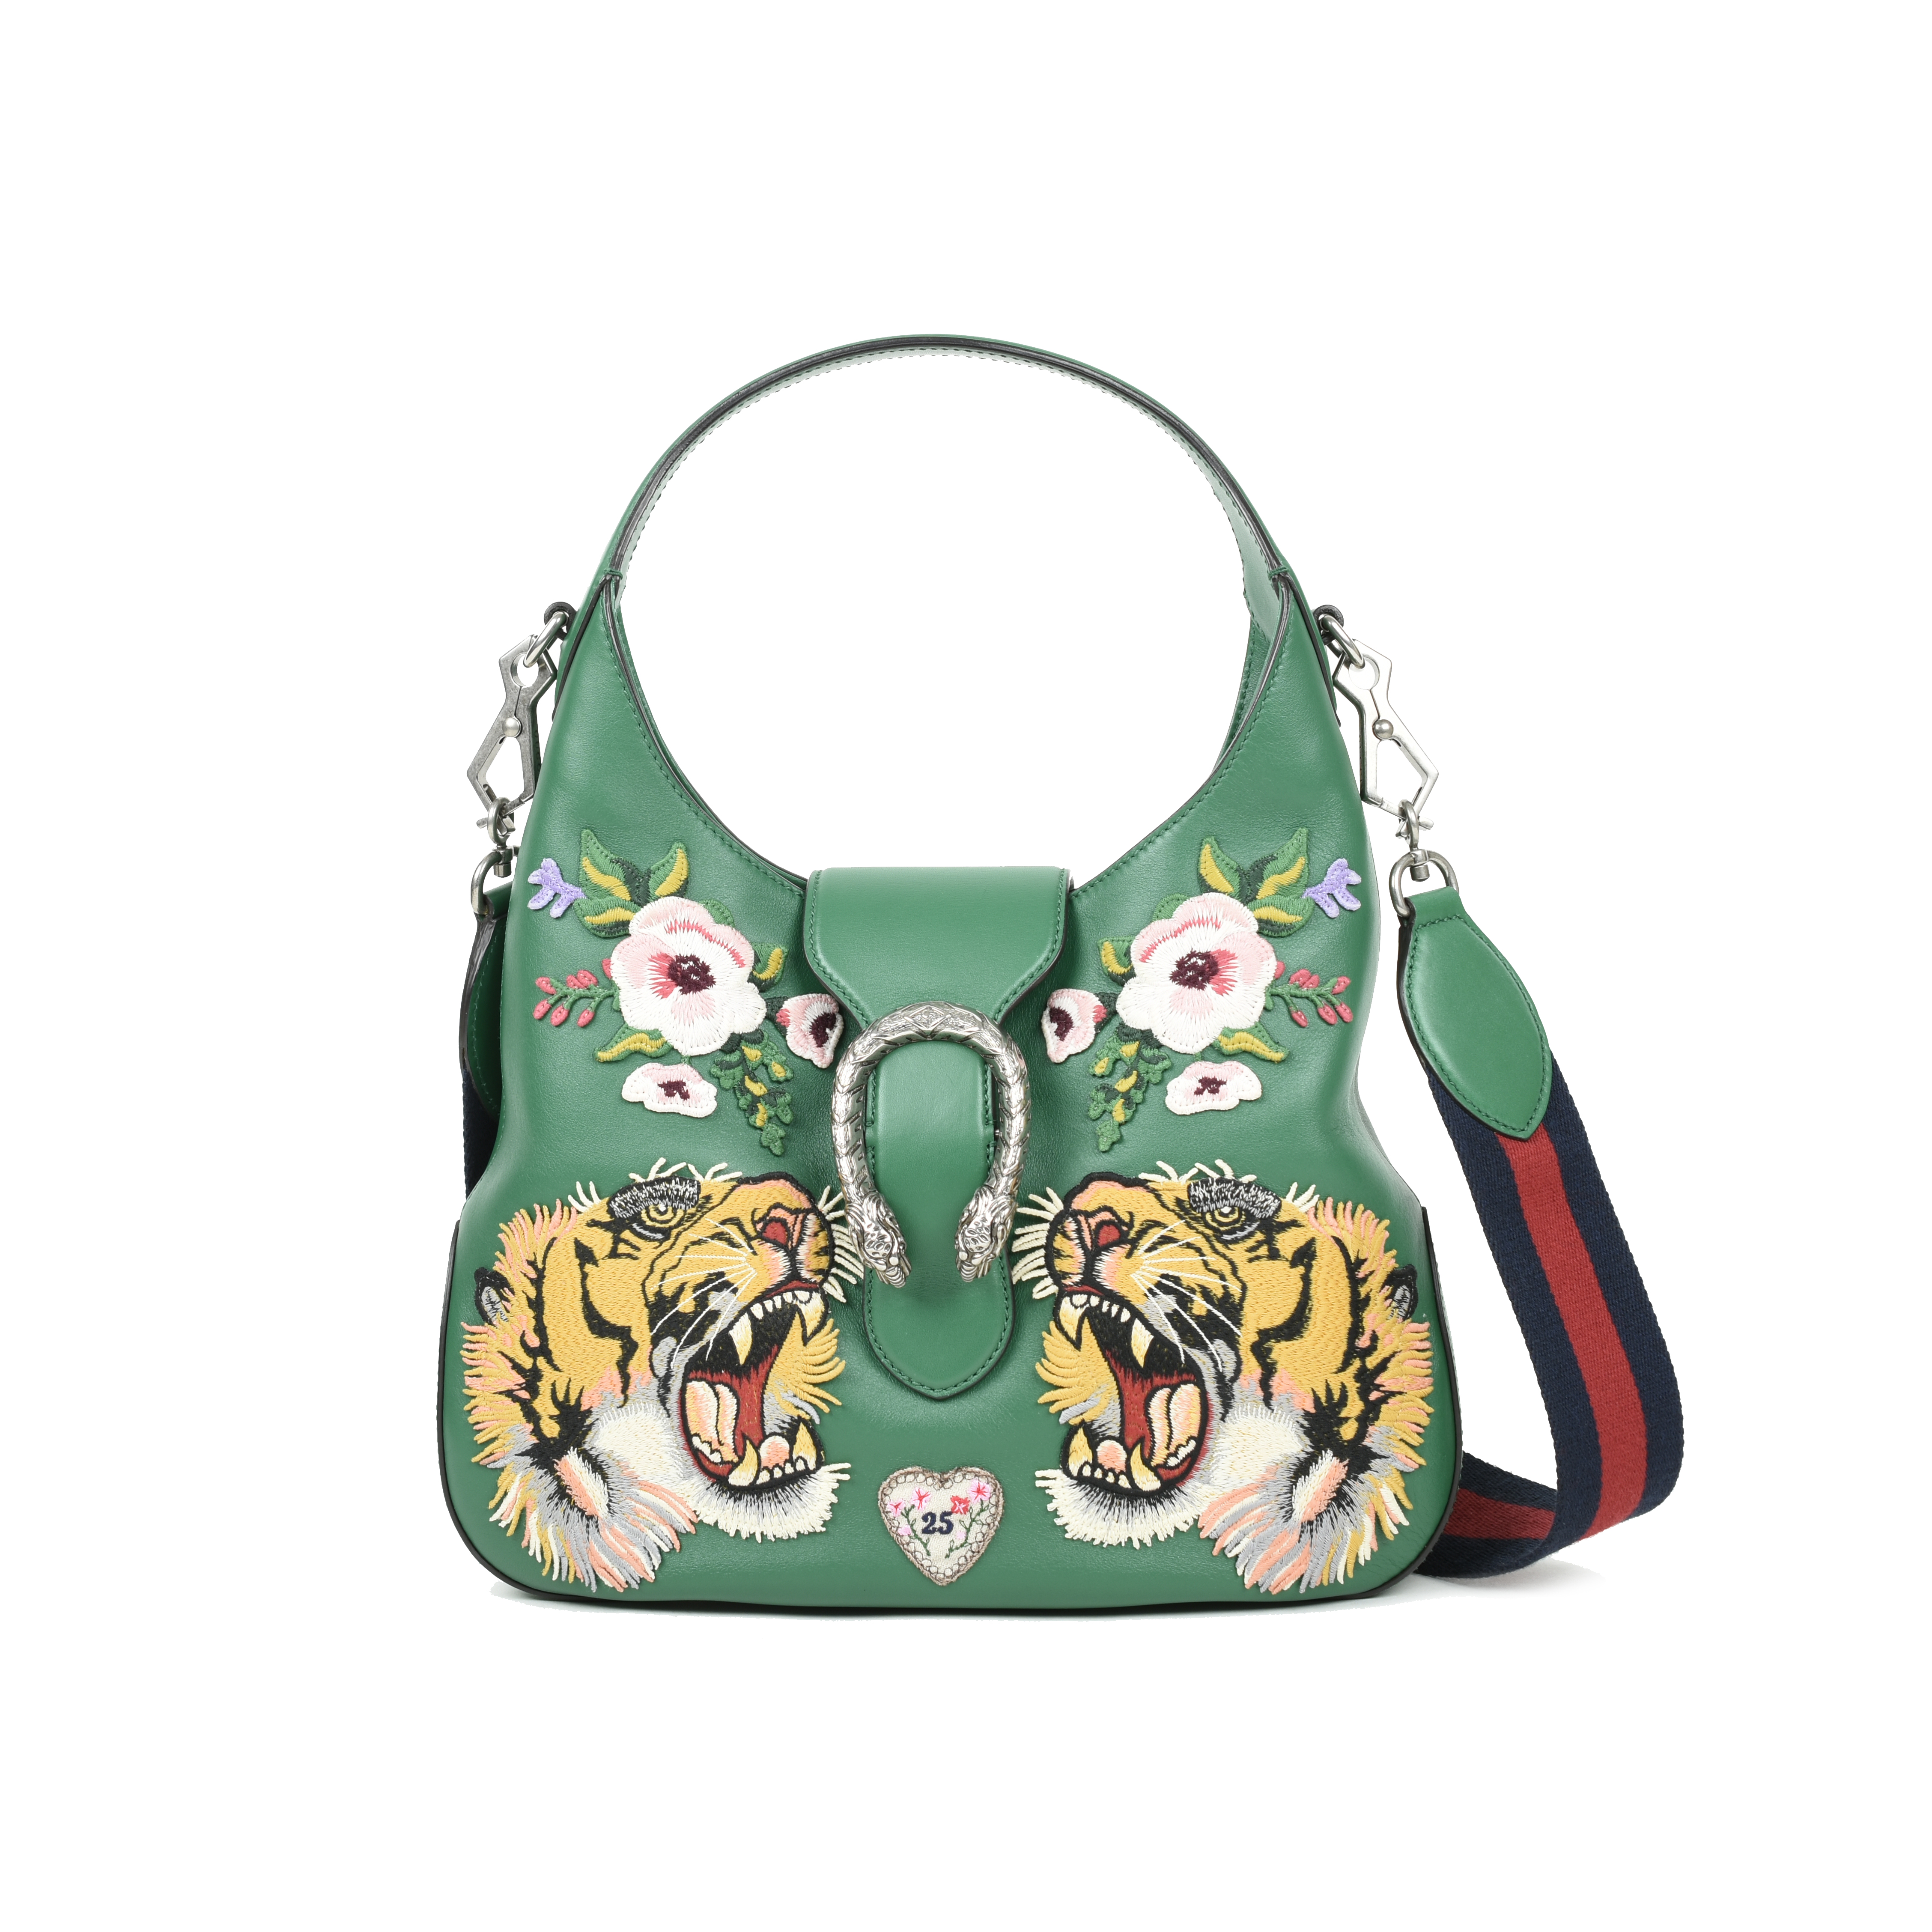 40685085909d Authentic Second Hand Gucci Dionysus Embroidered Hobo Bag (PSS-051-00343) |  THE FIFTH COLLECTION